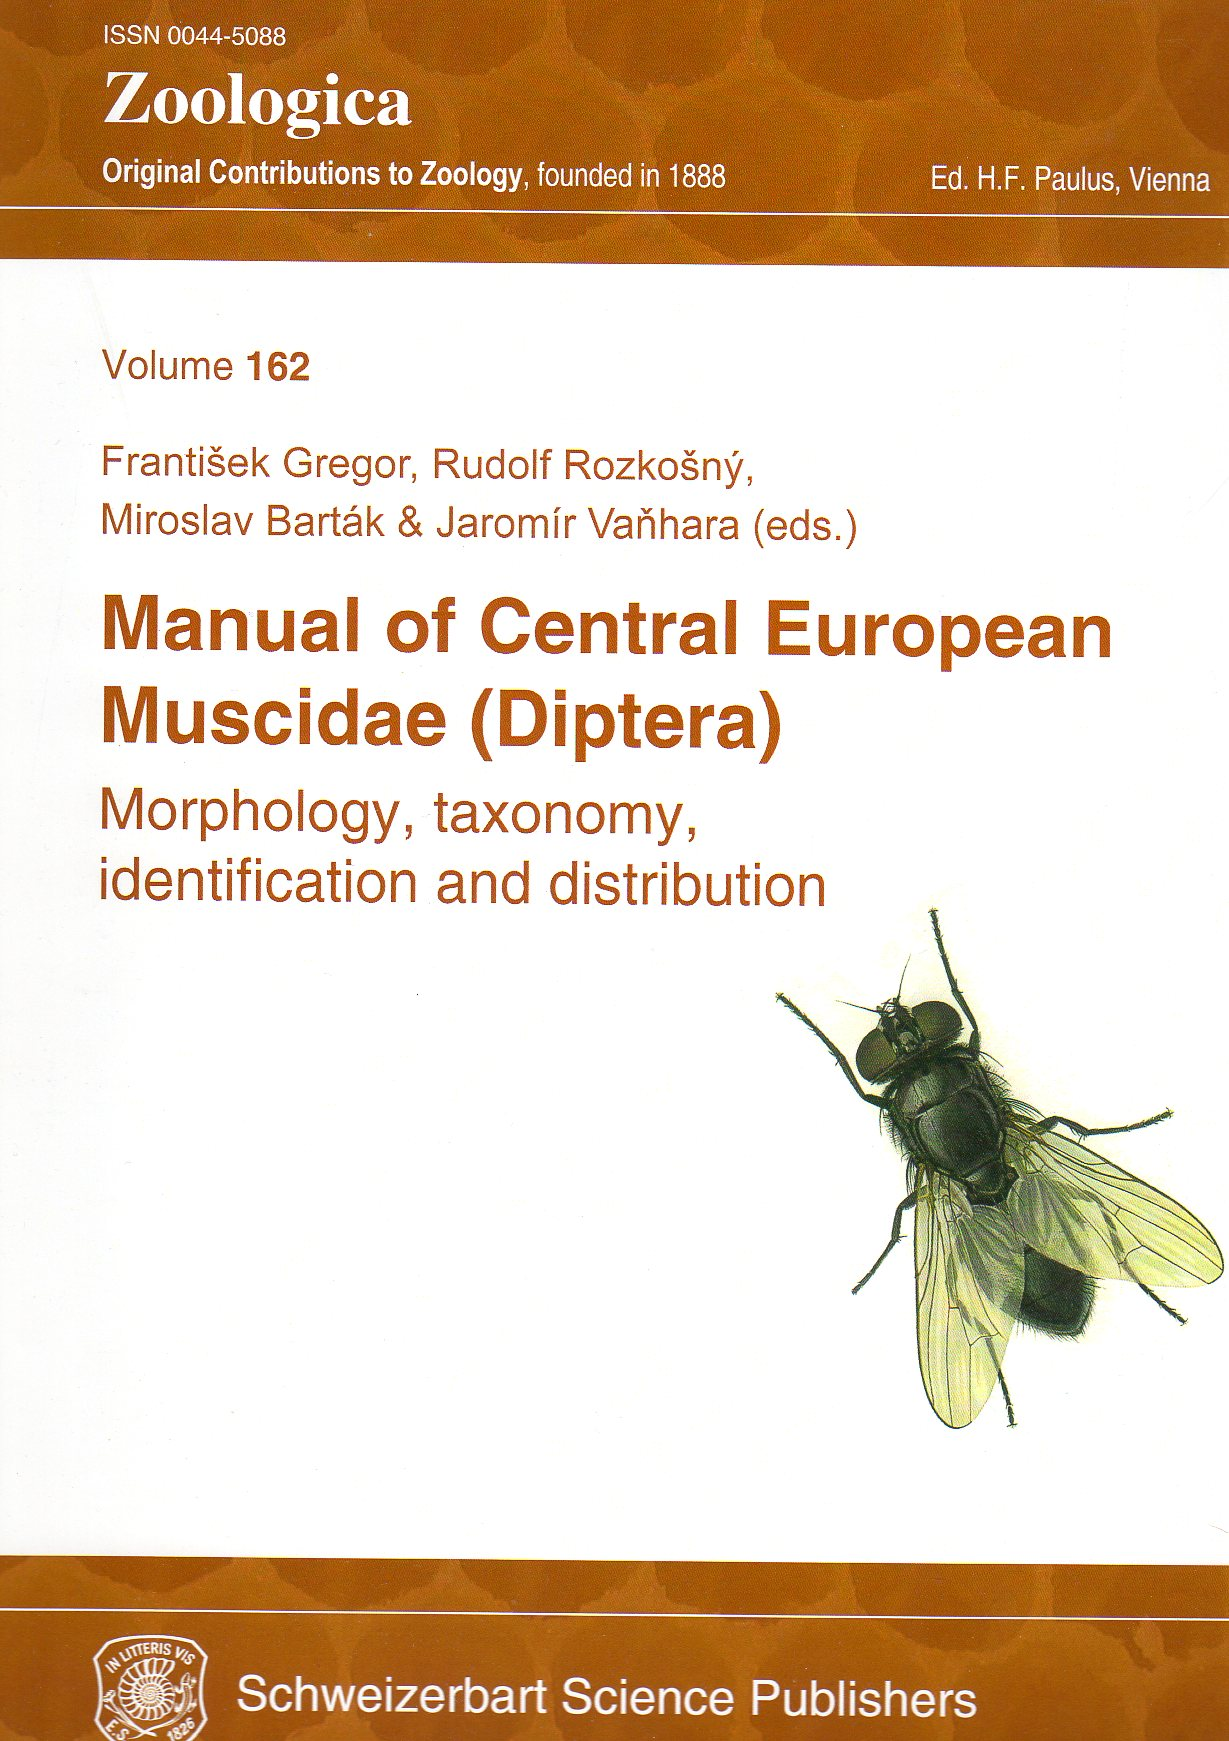 Manual of Central European Muscidae (Diptera). Morphology, taxonomy, identification and distribution